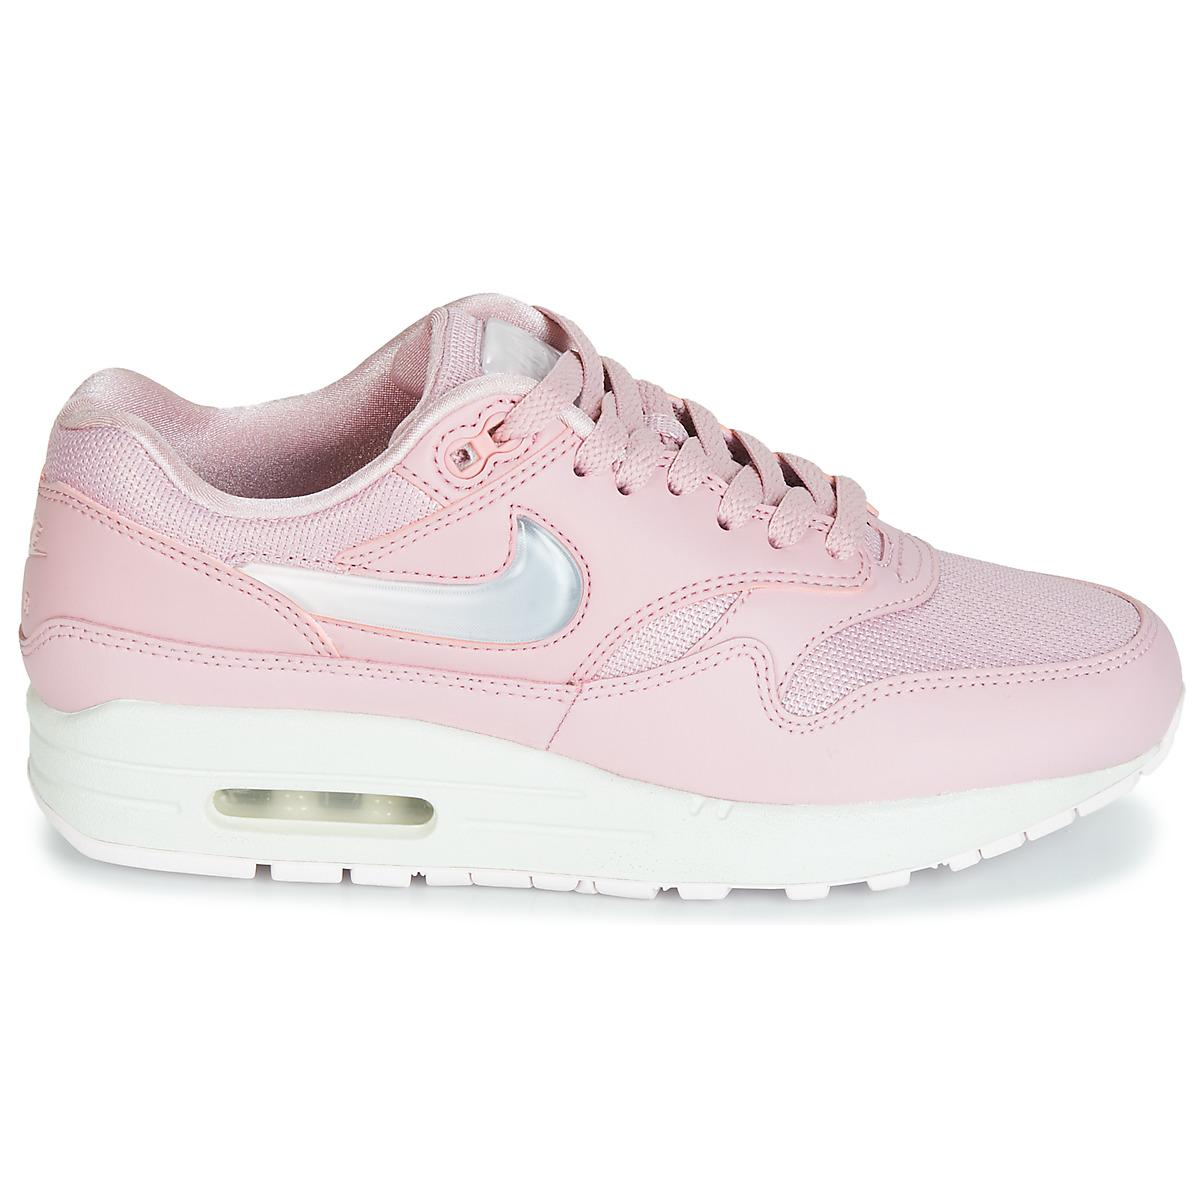 bbeaad4cb8232 Nike Air Max 1 Jp W Shoes (trainers) in Pink - Save 1% - Lyst